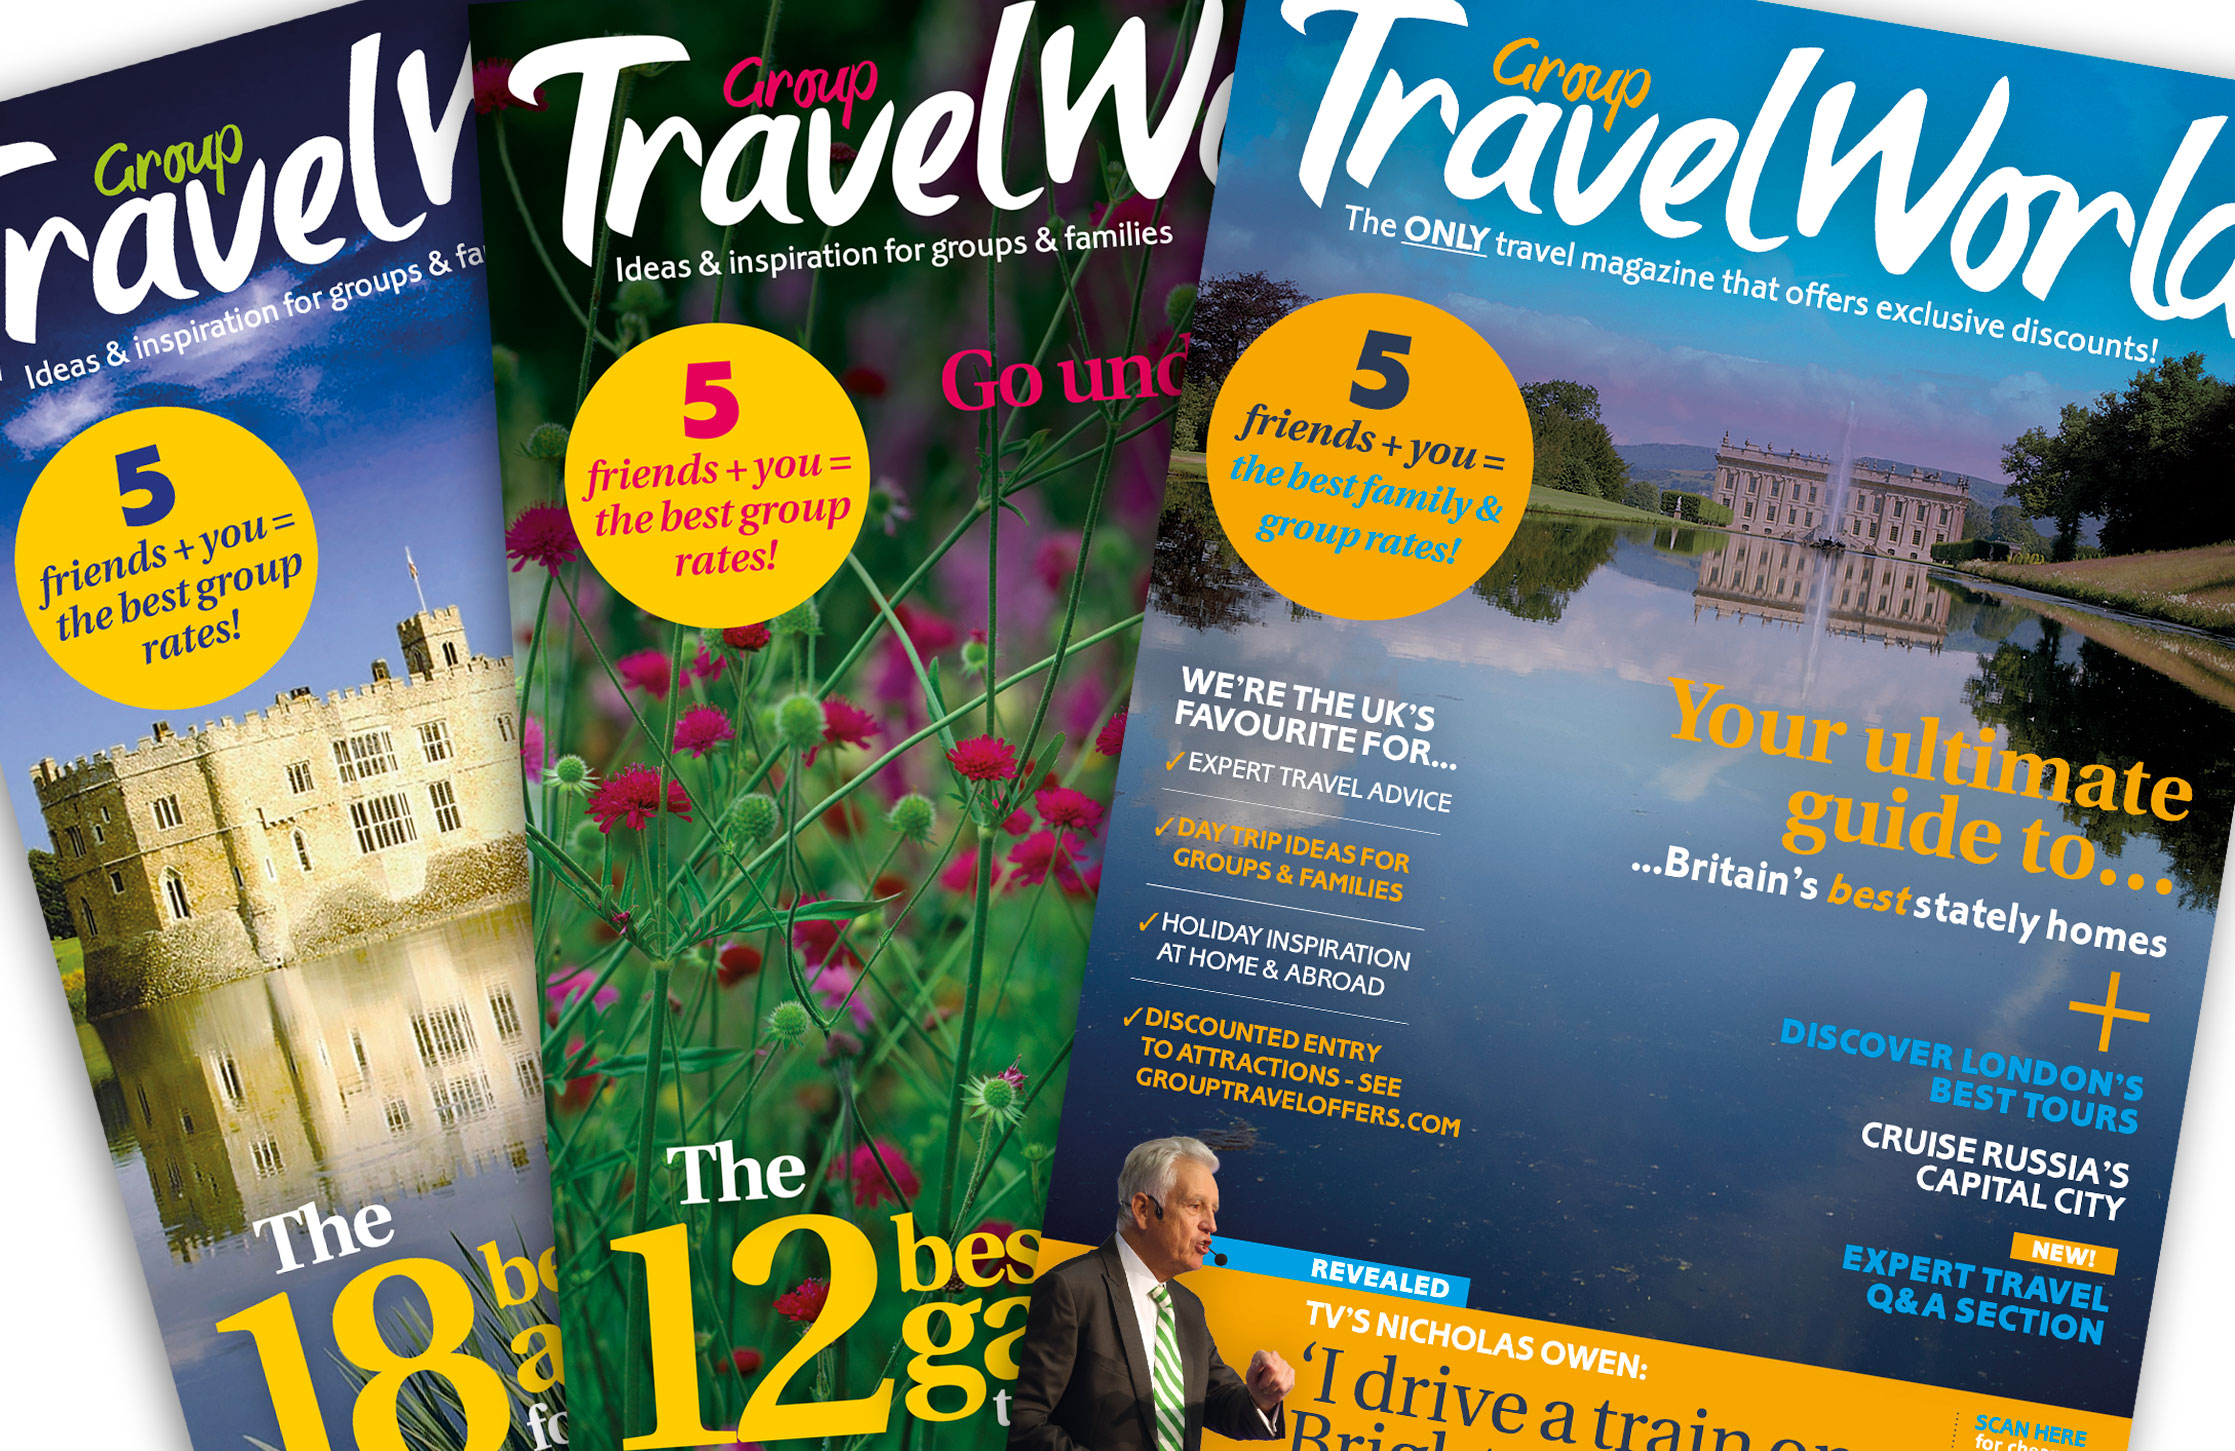 Group Travel World Magazine